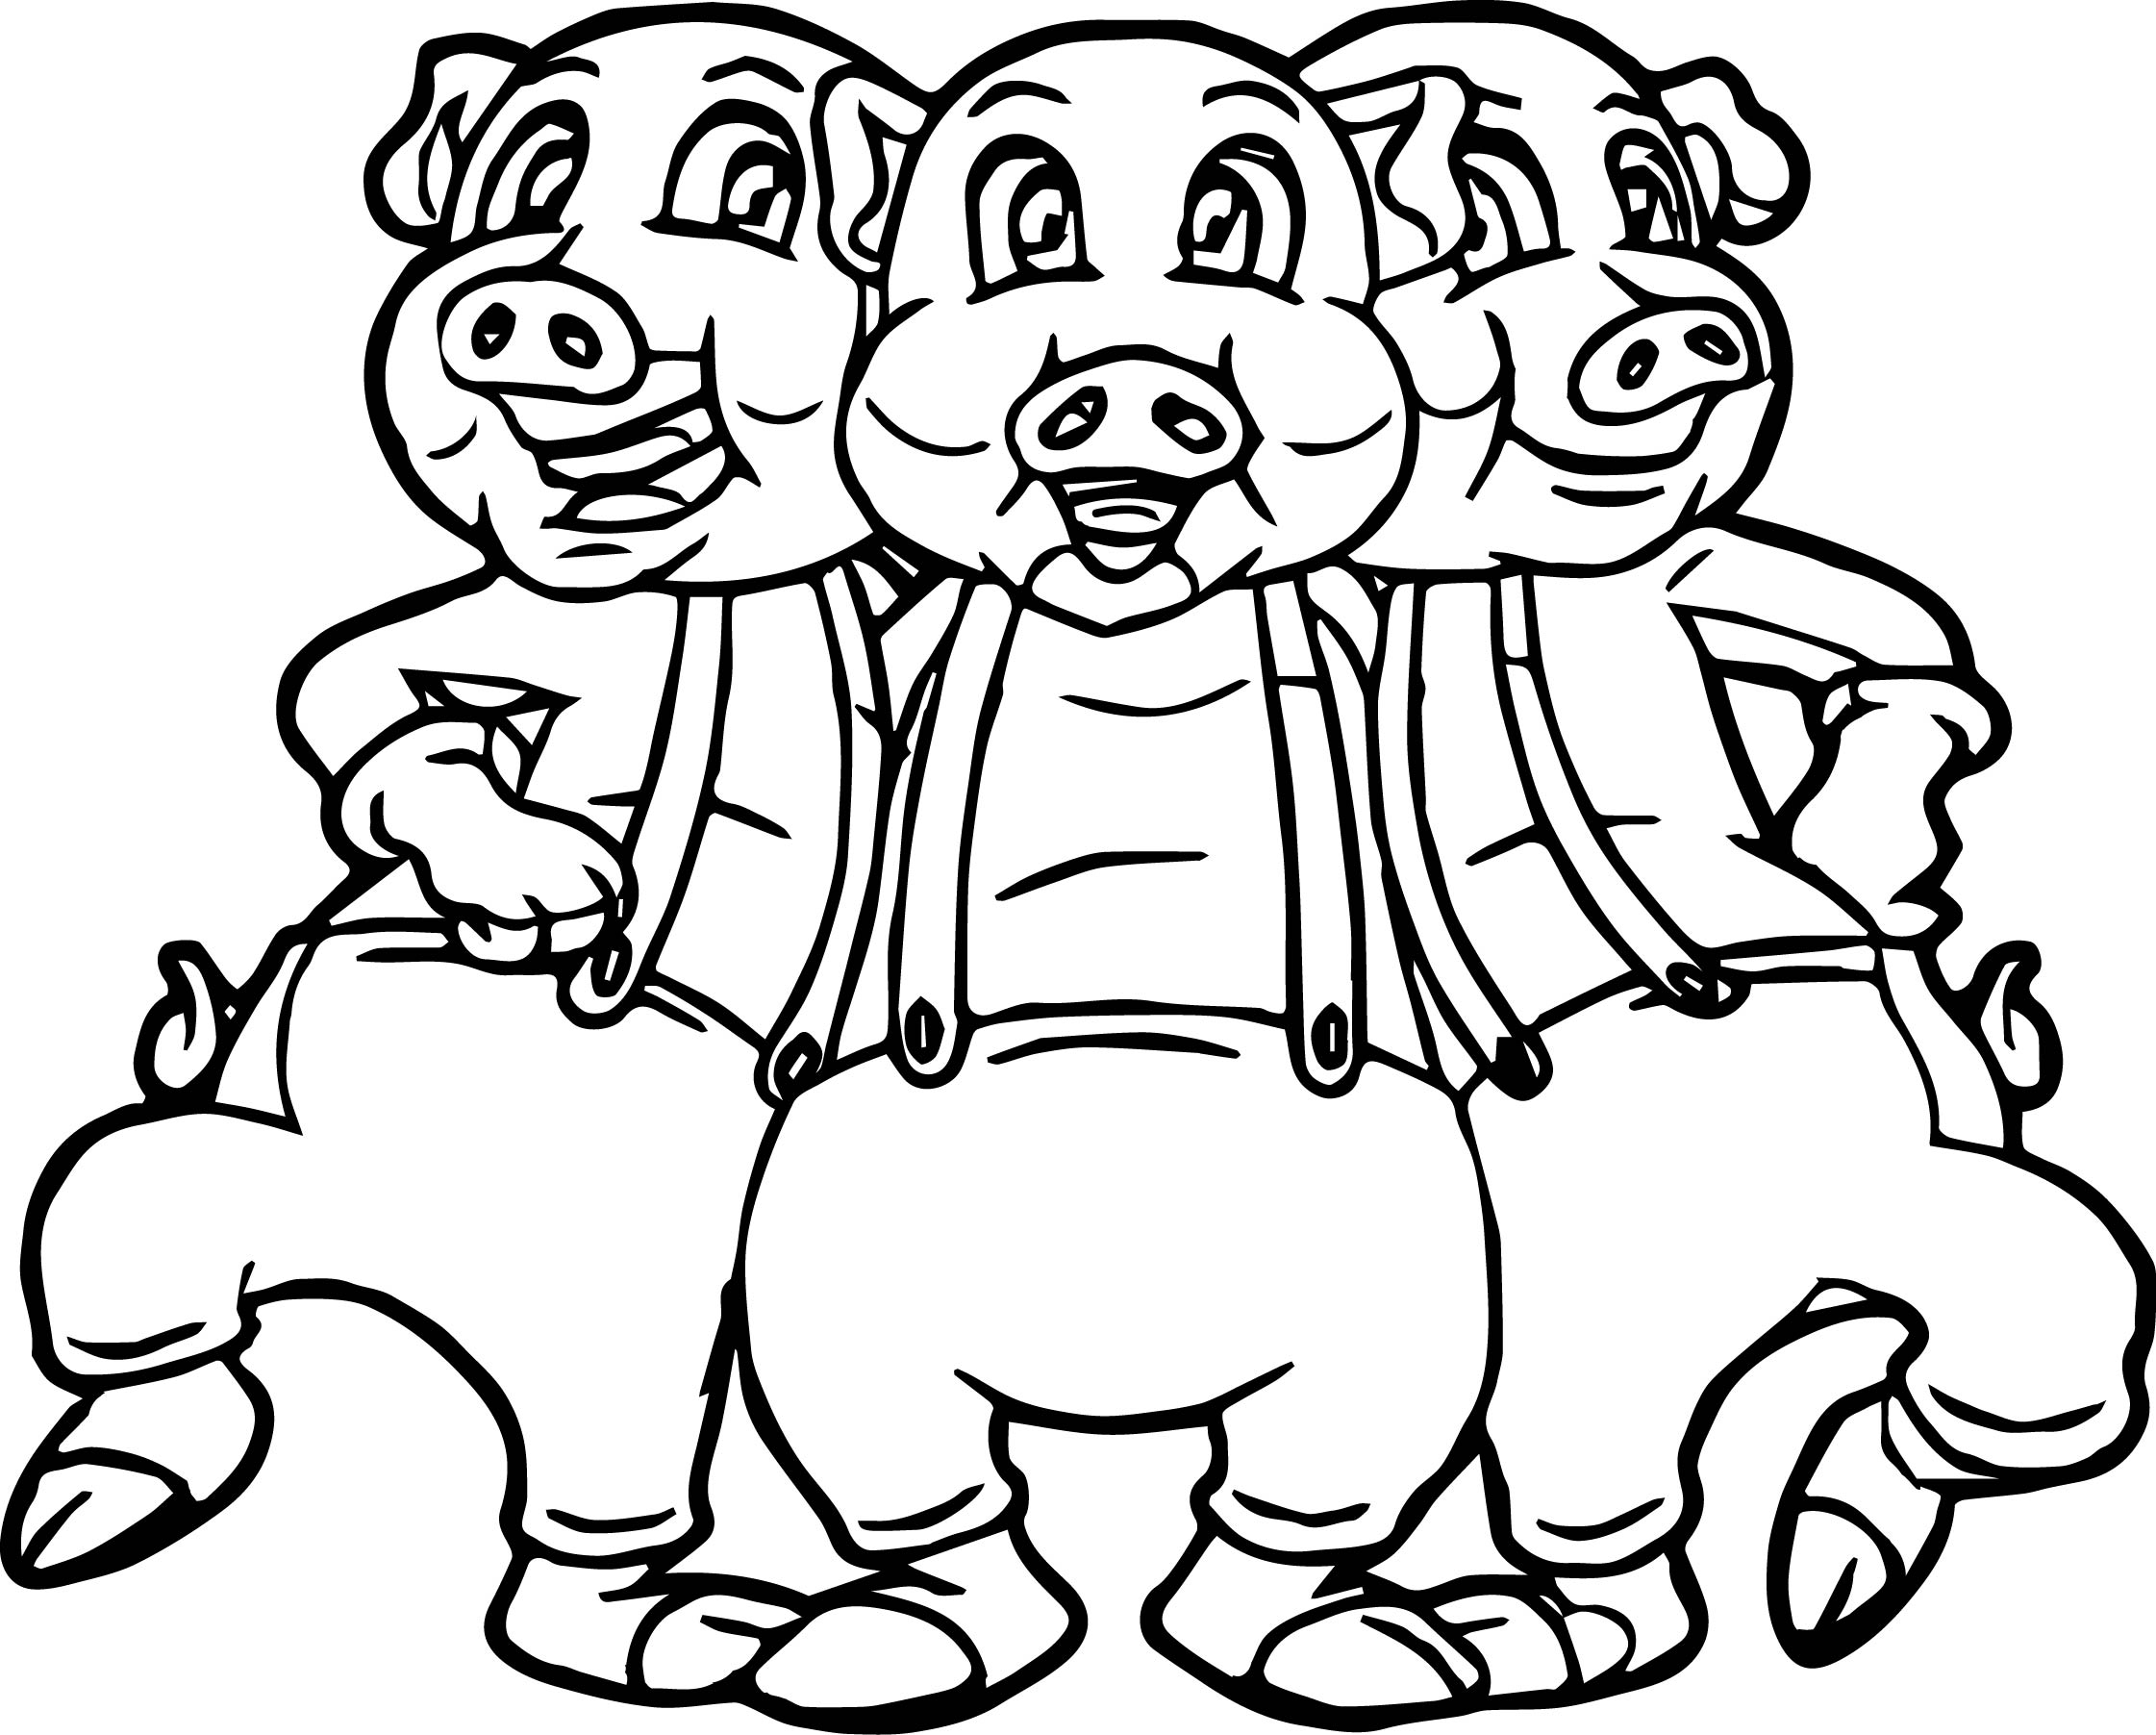 coloring pages pigs - three little pigs dancing coloring page